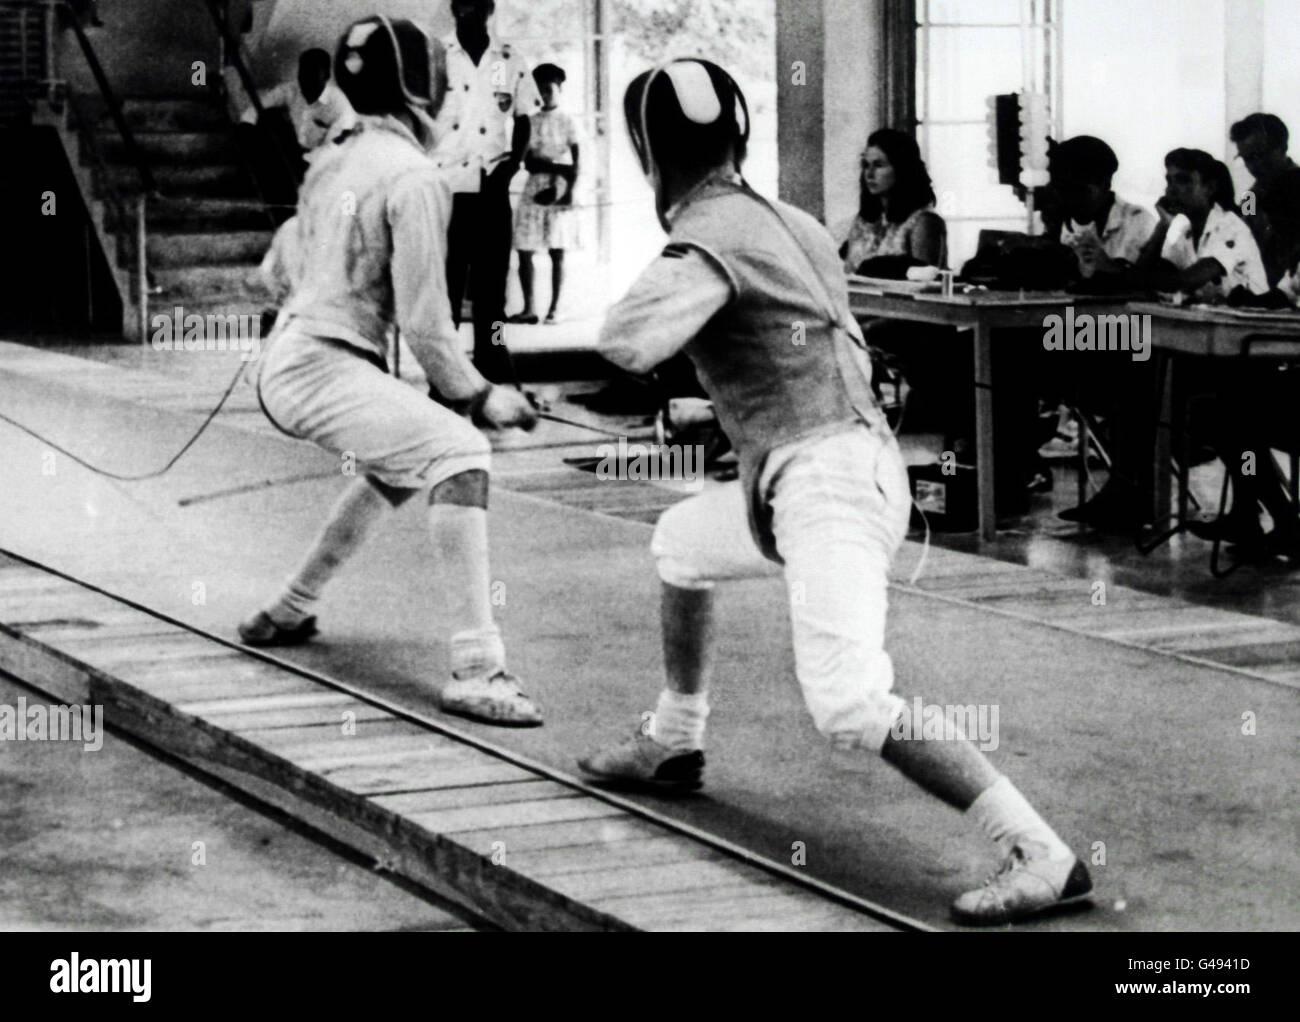 Fencing - 8th British Commonwealth Games - Kingston, Jamaica Stock Photo